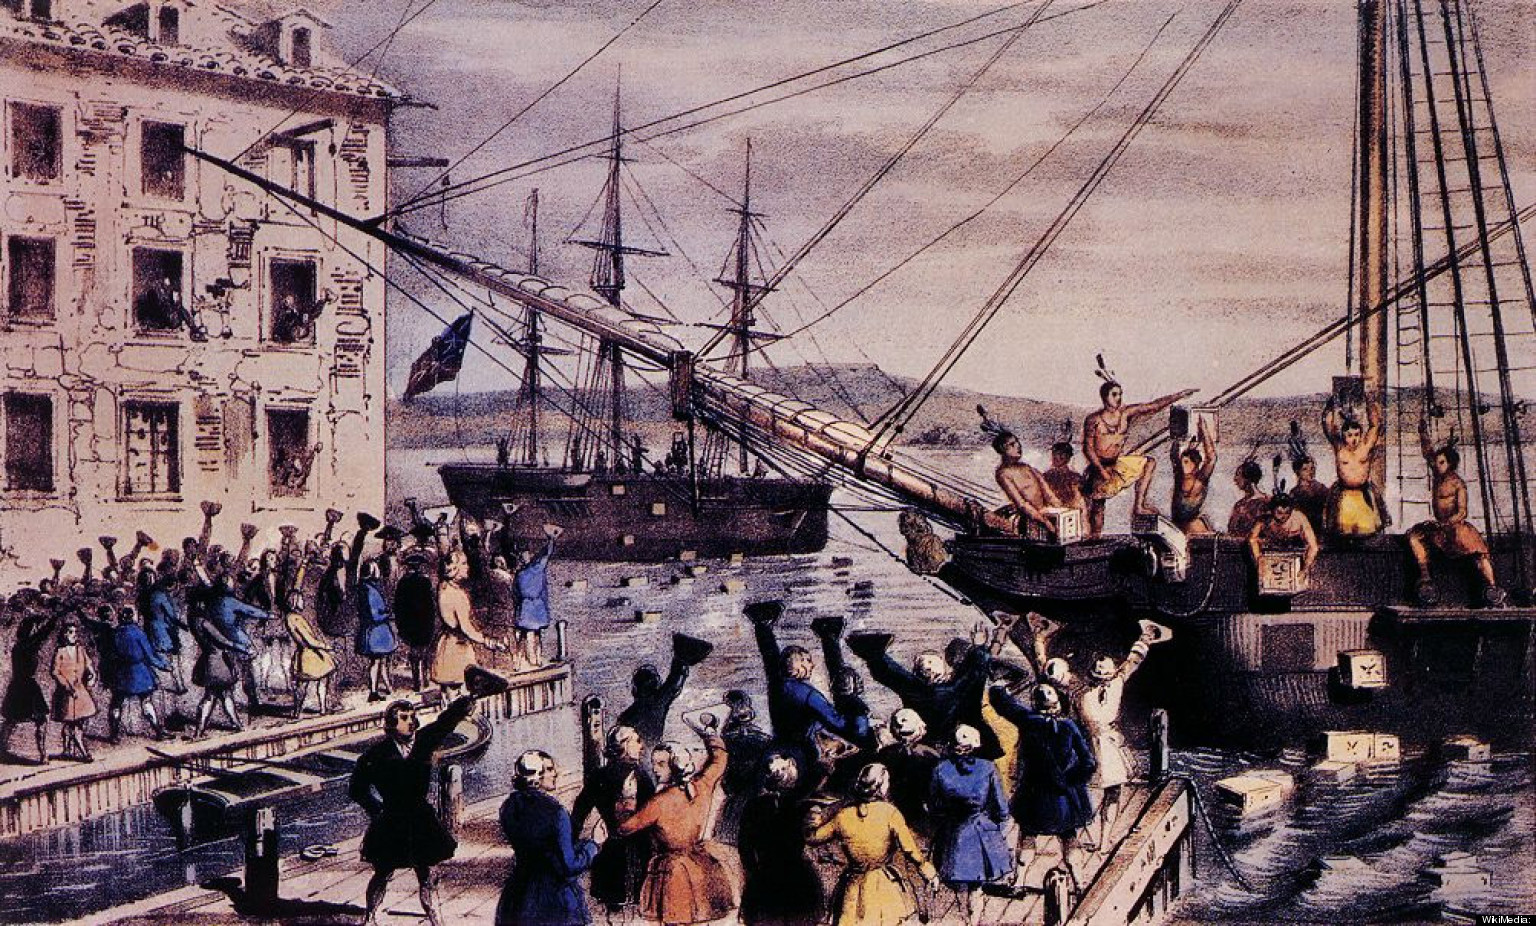 boston tea party was act of terrorism texas public schools teaching new history lesson huffpost. Black Bedroom Furniture Sets. Home Design Ideas